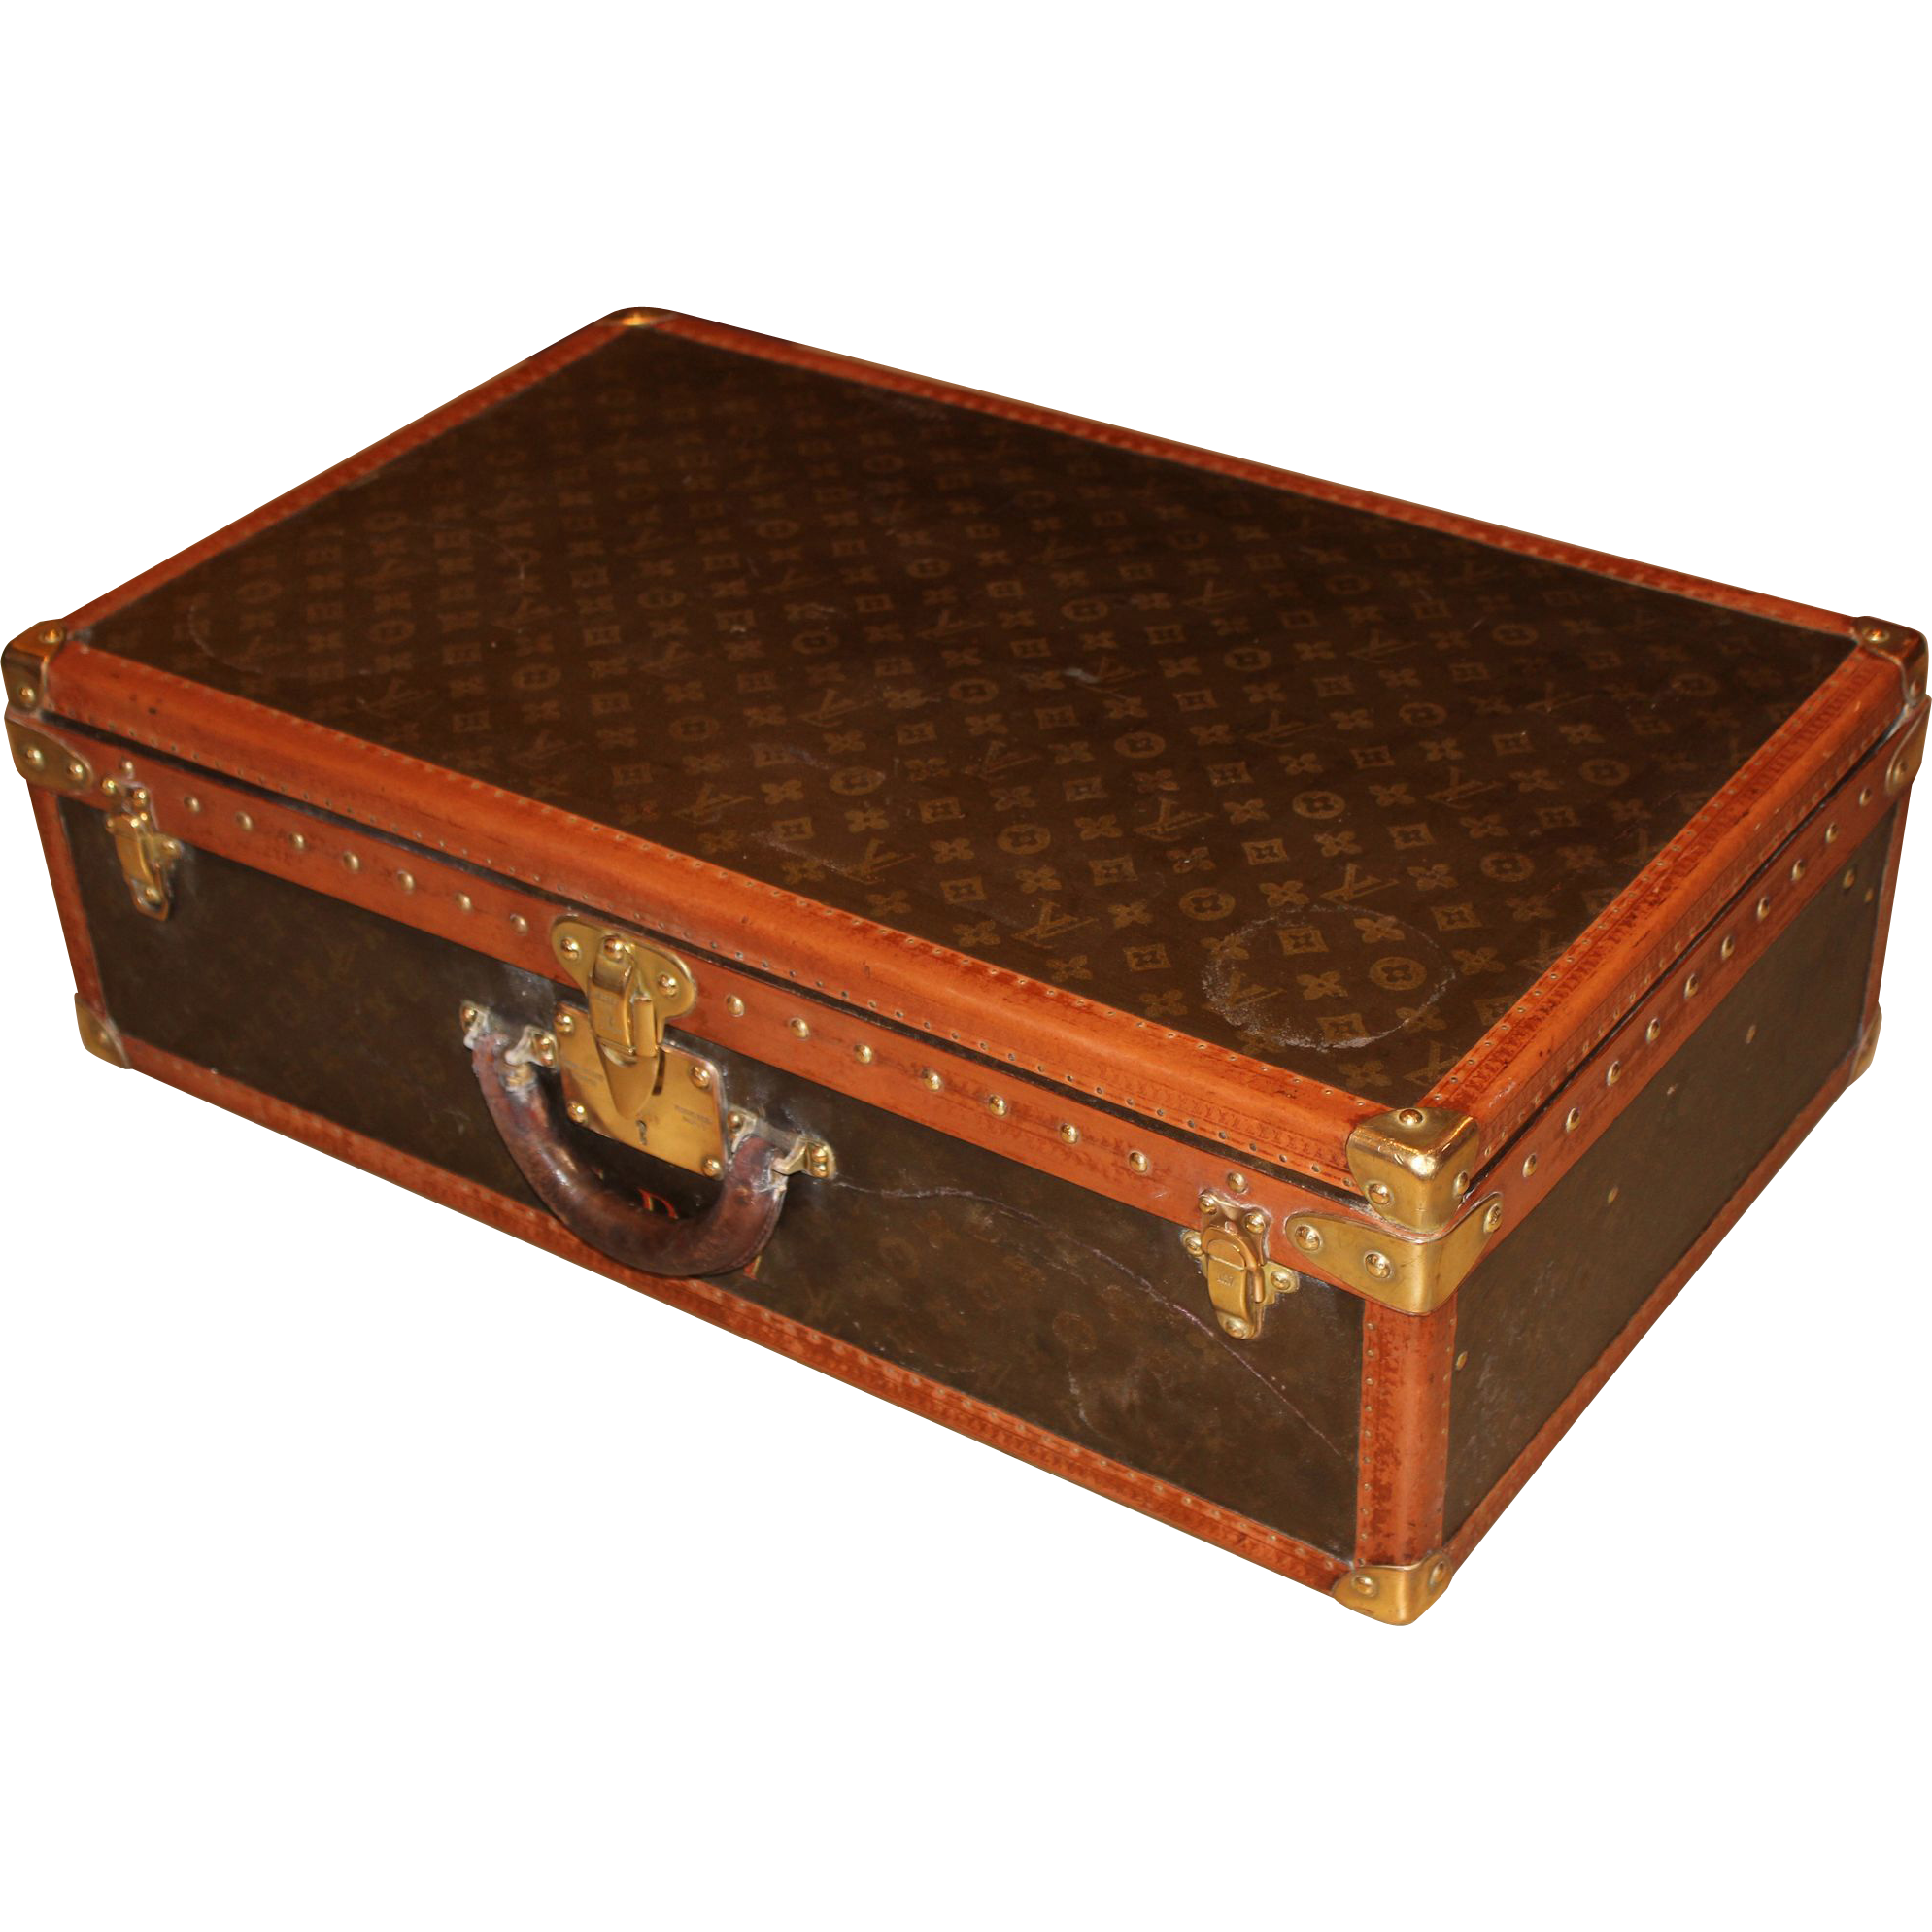 Louis Vuitton Hardside Luggage Suitcase with Interior Tray & Key circa 1940's